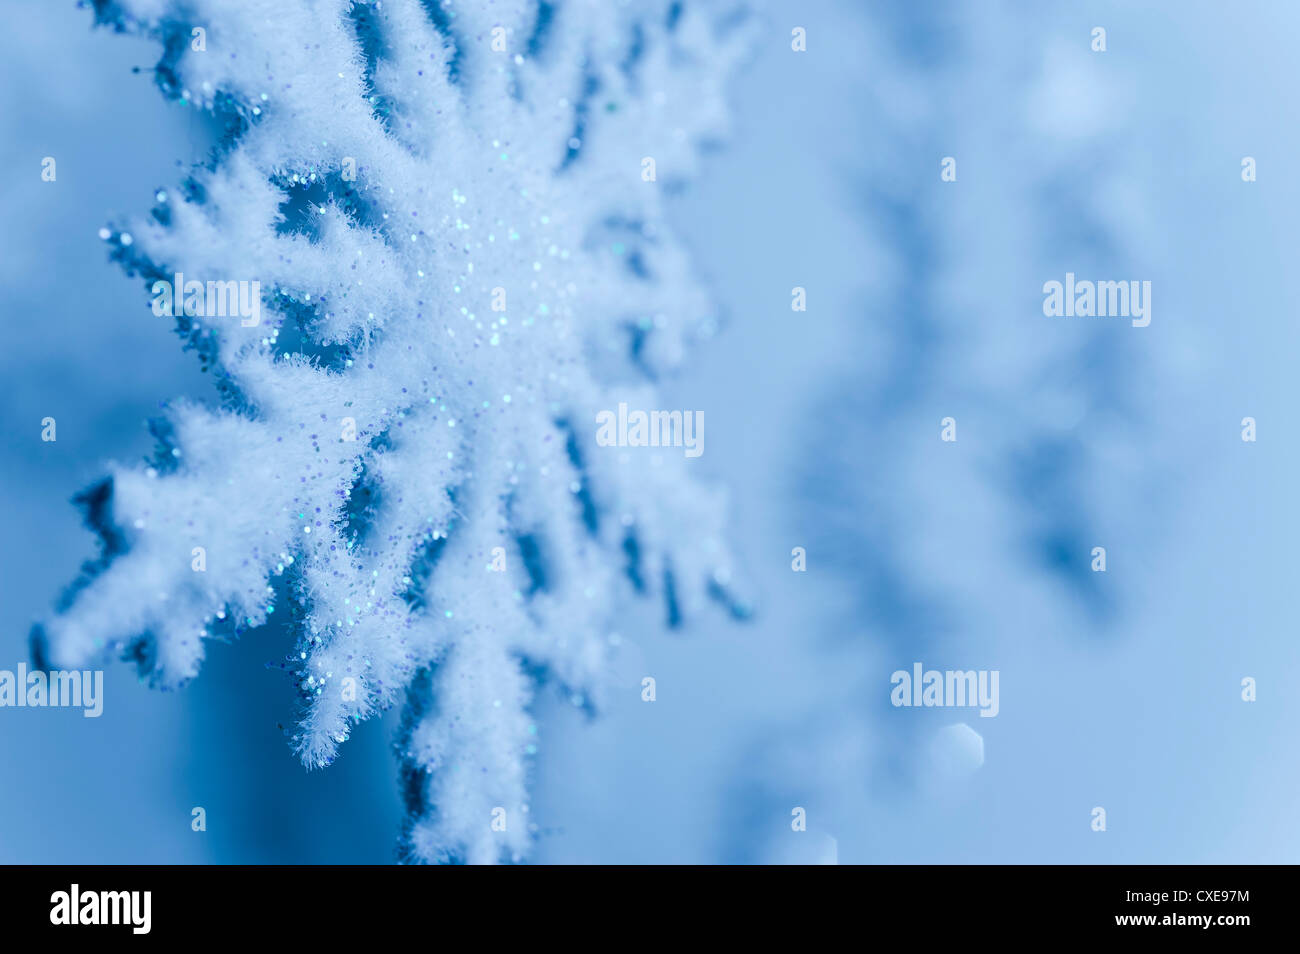 Snowflake decoration - Stock Image